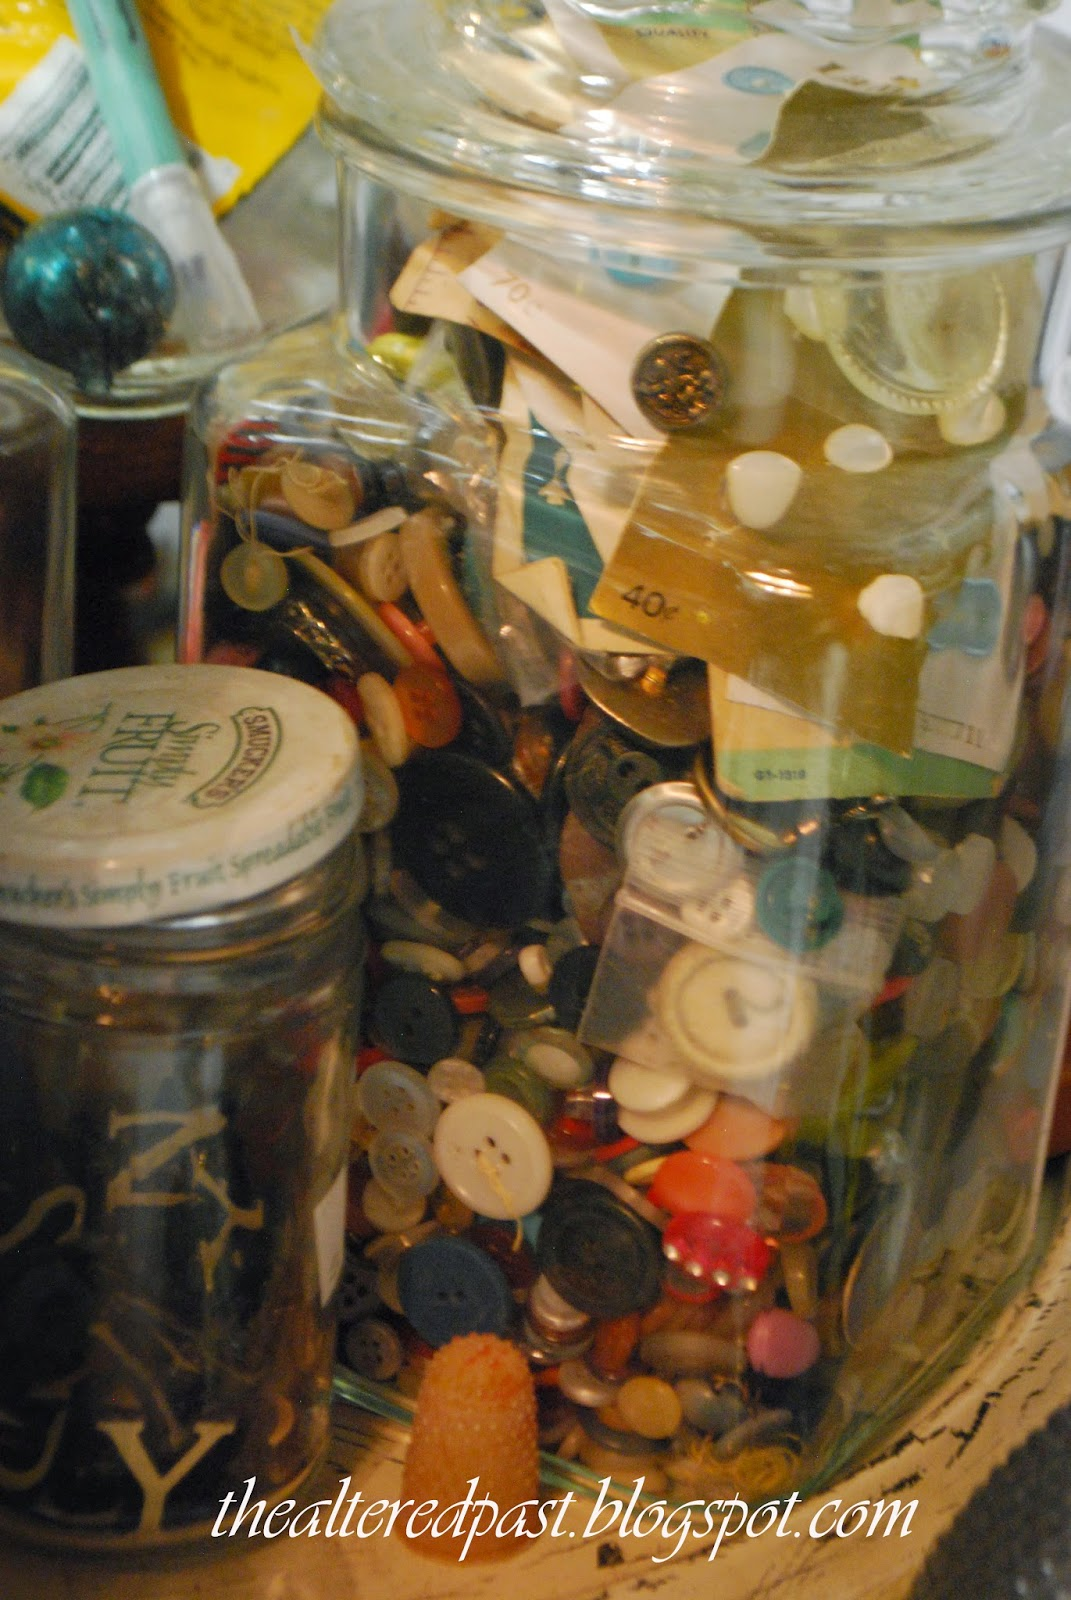 workroom studio, the altered past blog, old buttons and jars